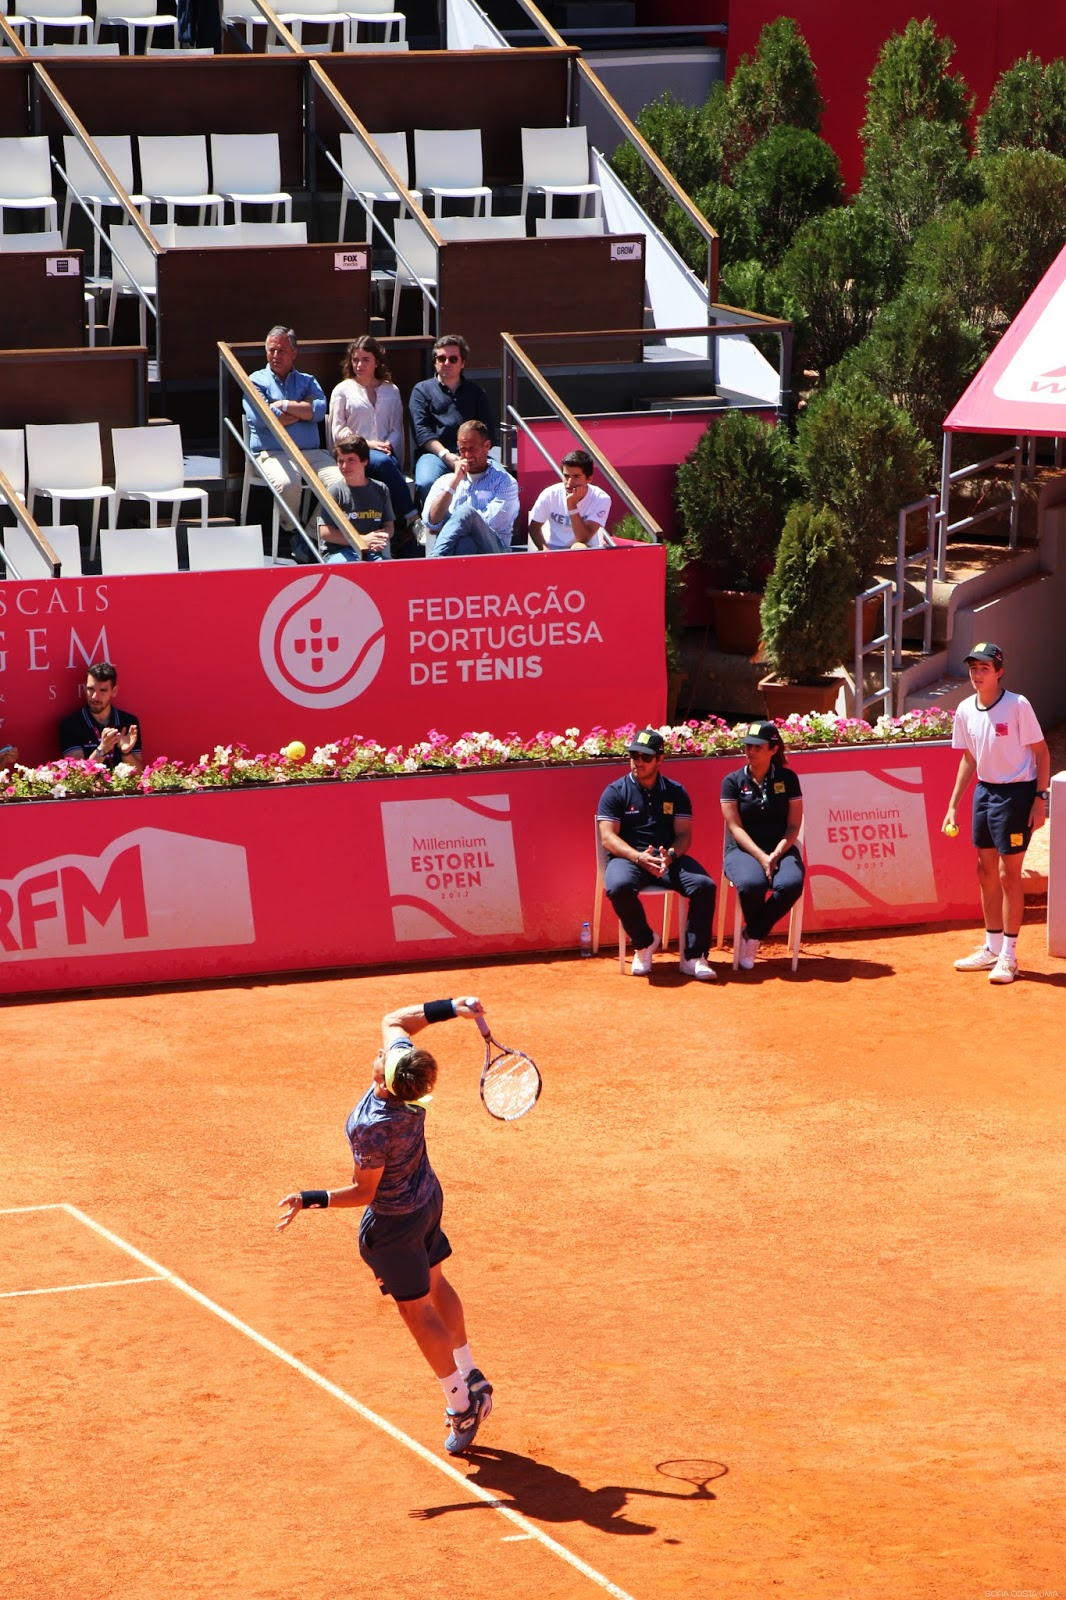 David Ferrer - Millennium Estoril Open 2017